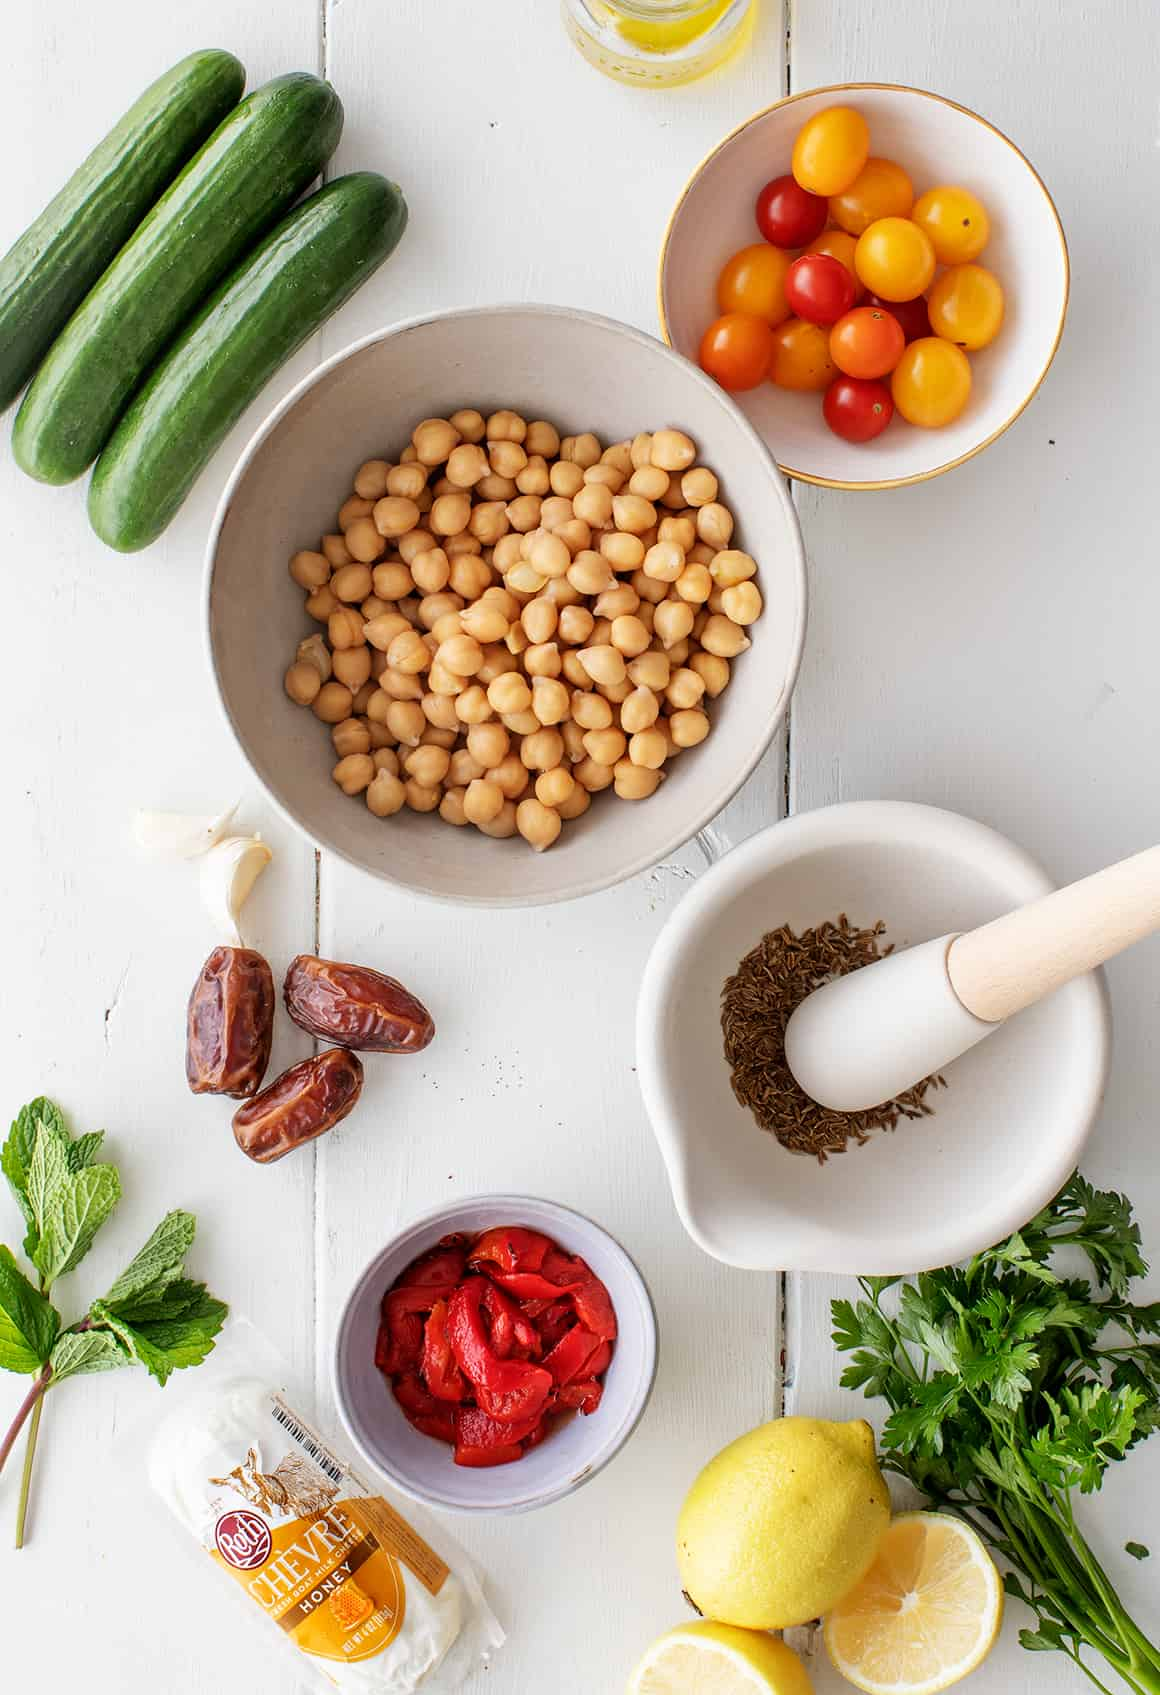 Chickpea salad recipe ingredients